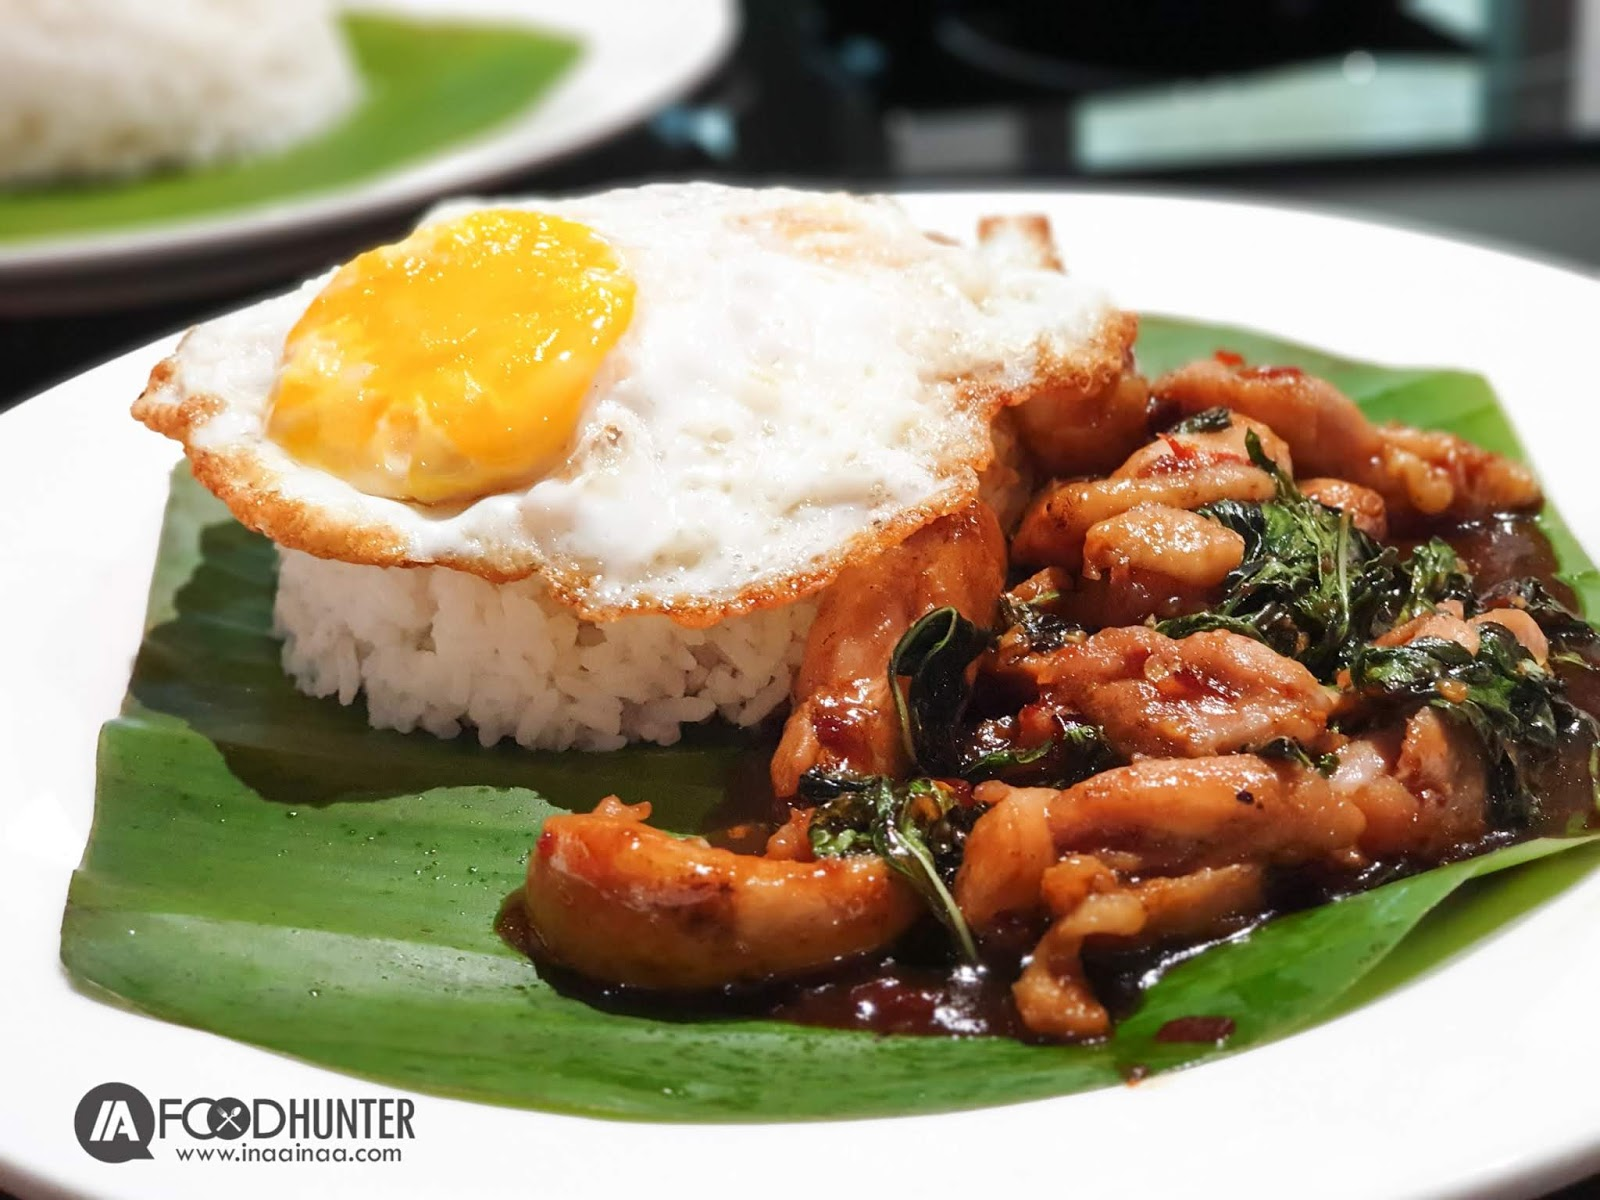 SHOWER BEEF DI RESTORAN ROD DEE DED - IAFOODHUNTER